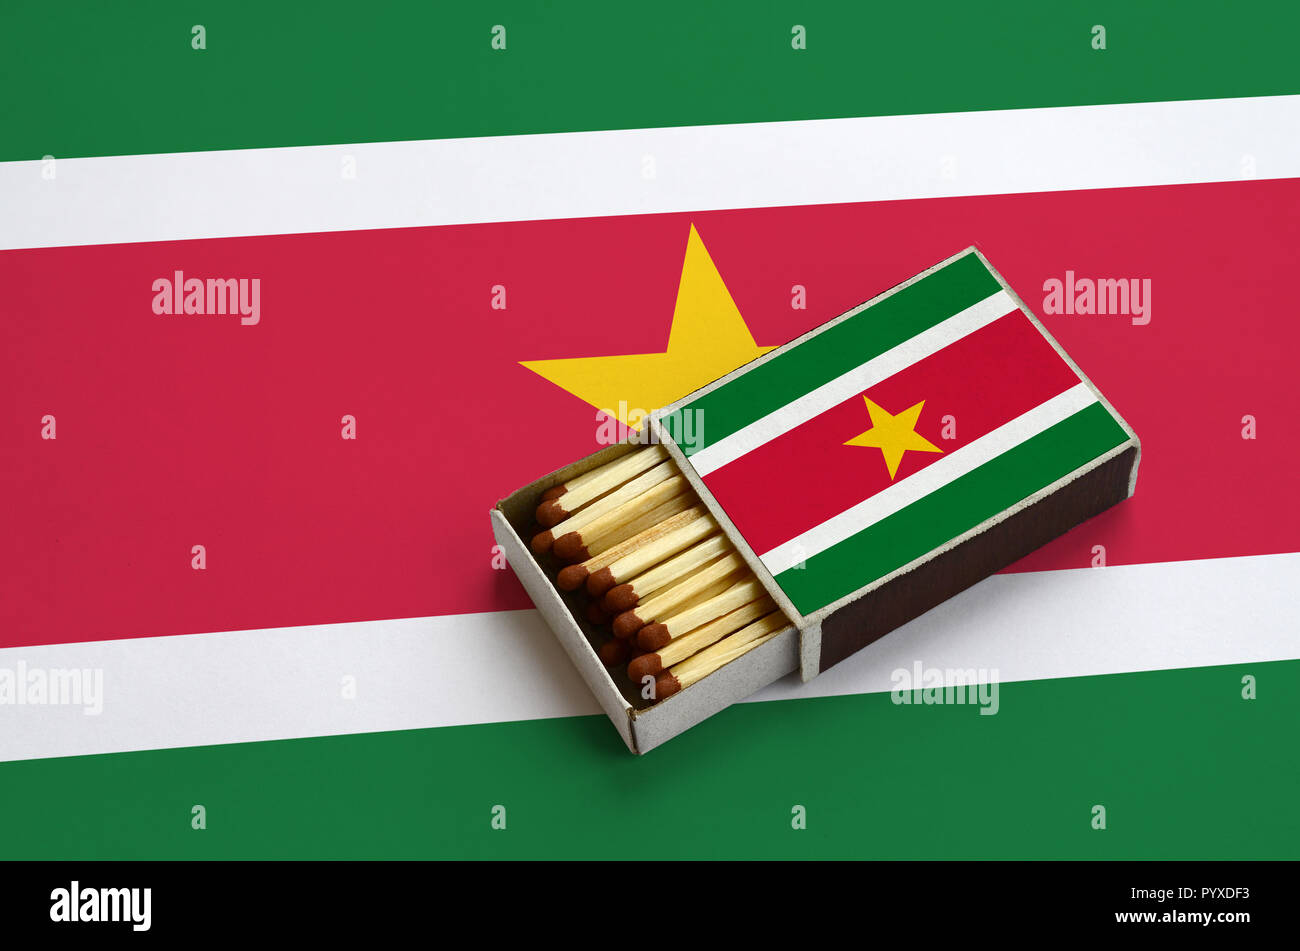 Suriname flag  is shown in an open matchbox, which is filled with matches and lies on a large flag. - Stock Image